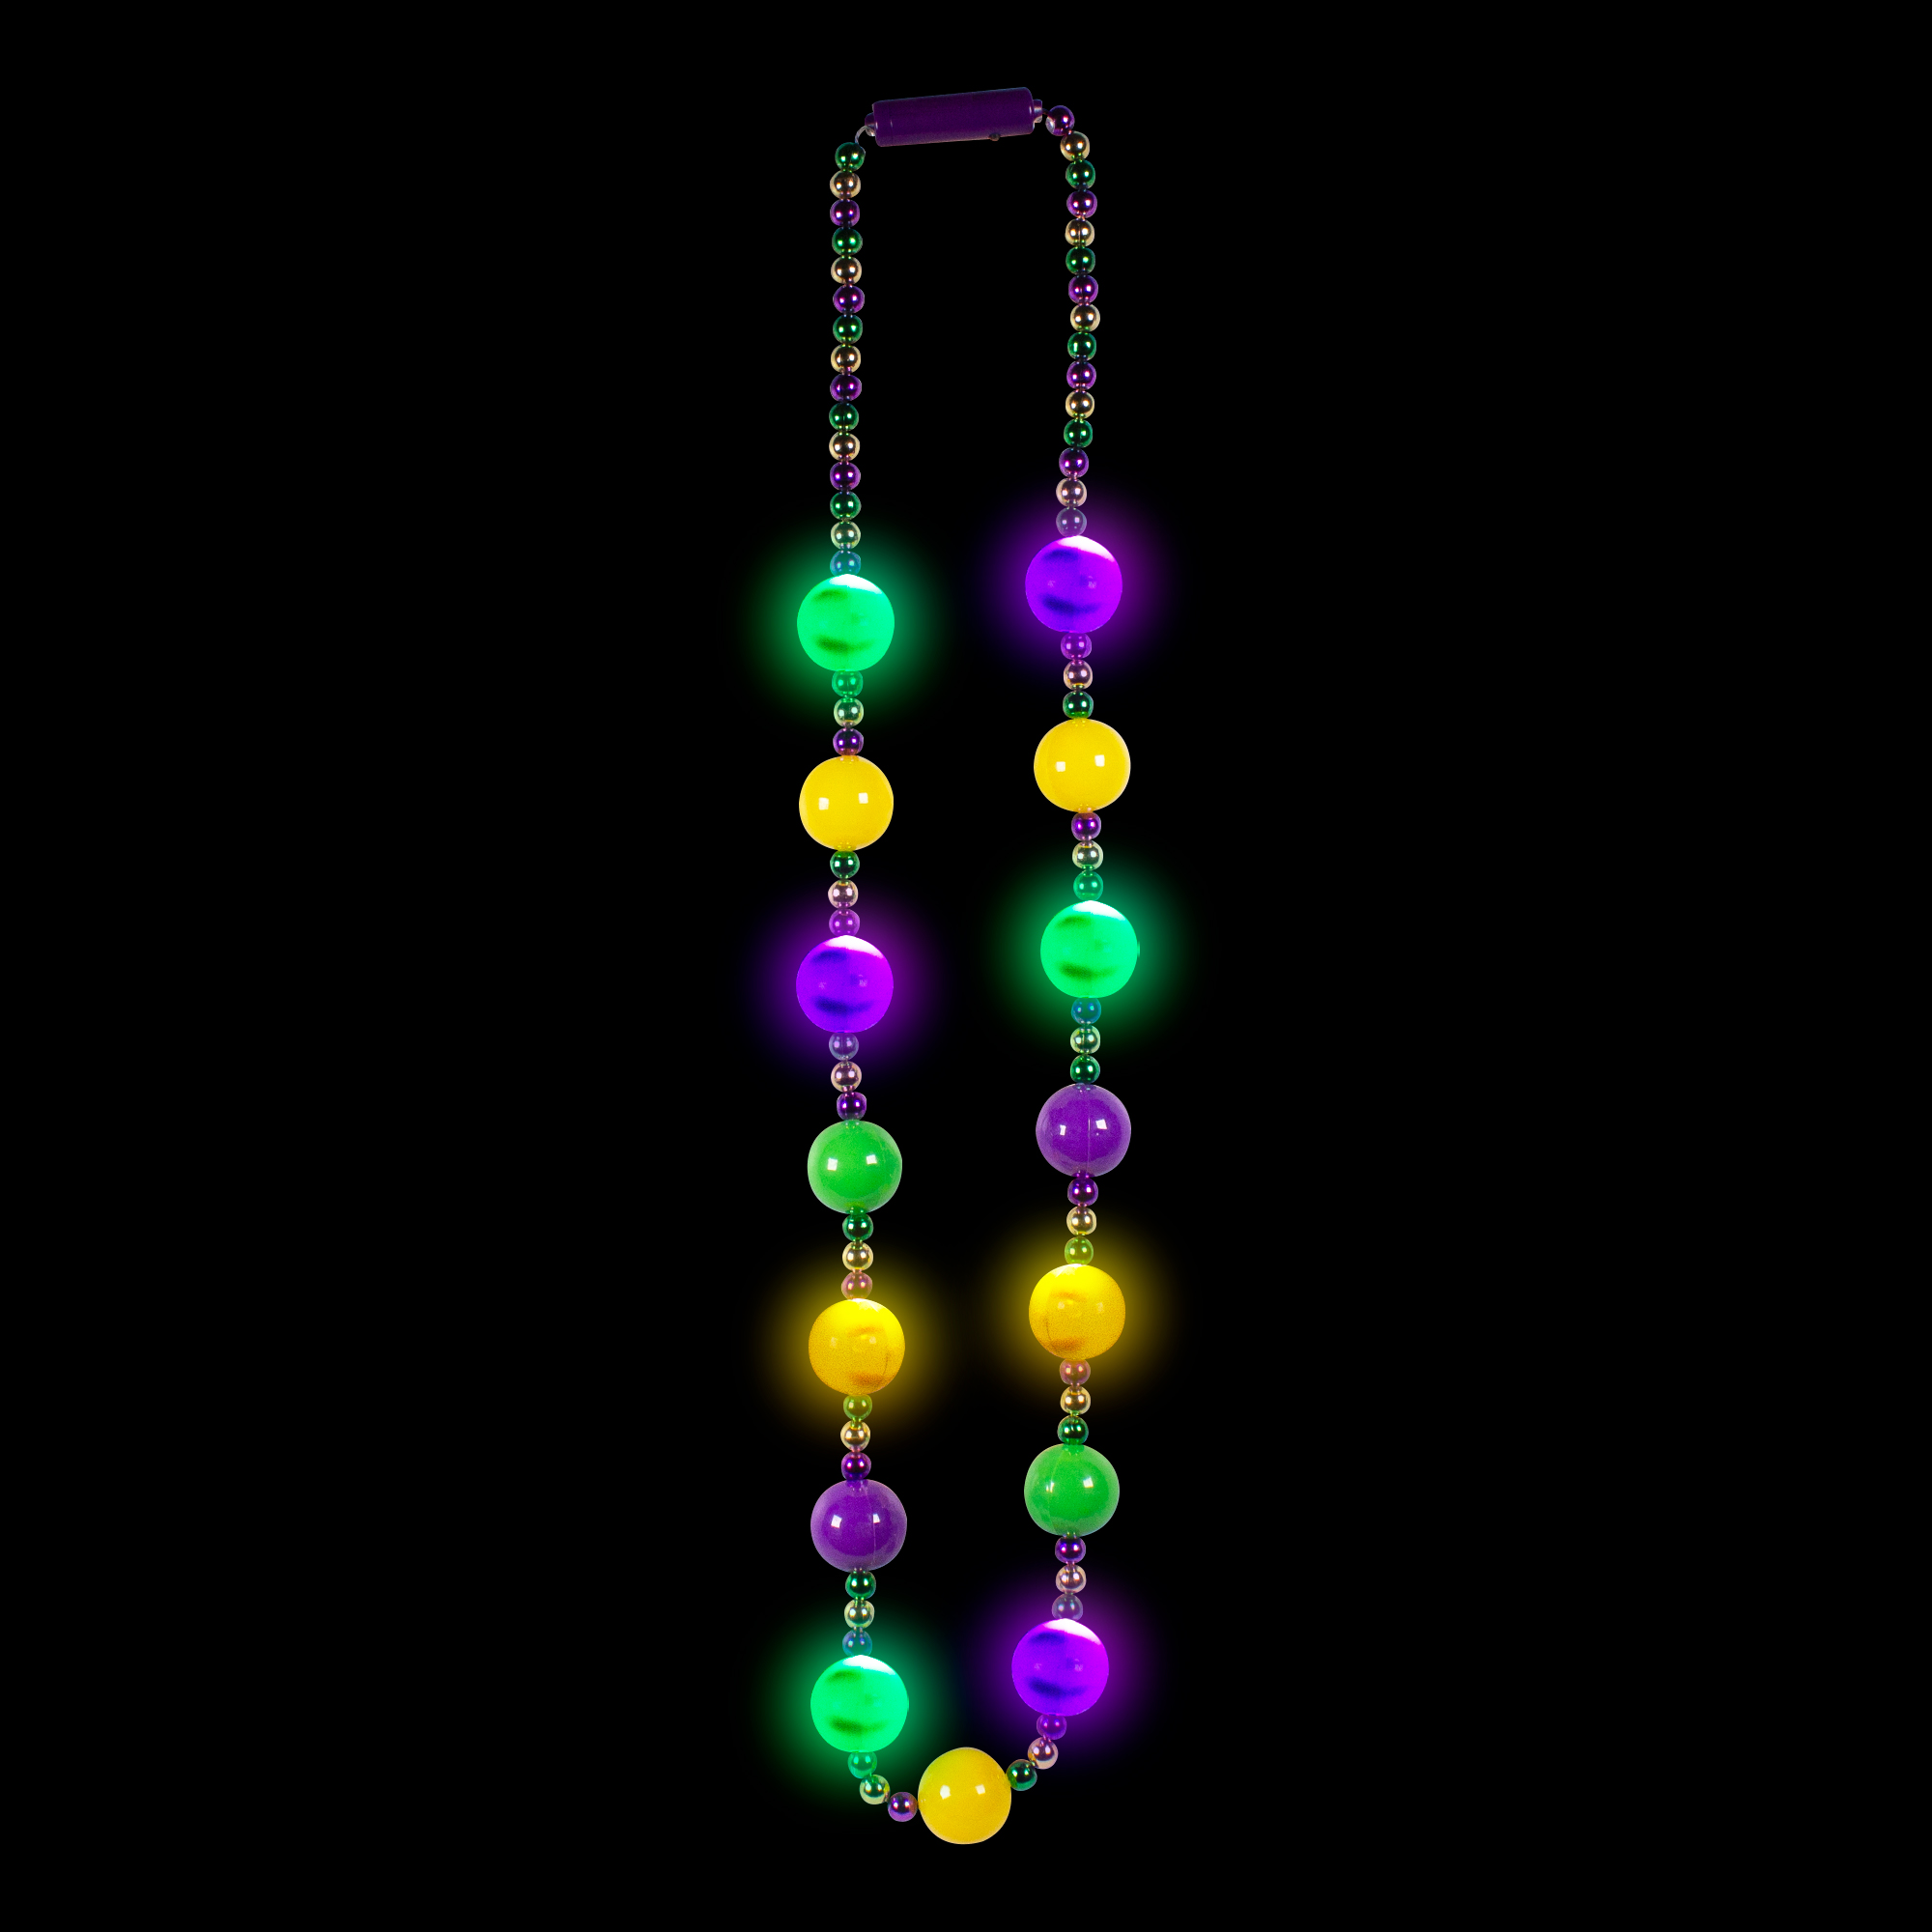 MARDI GRAS BALL BEADS NECKLACE 15X30MM BALLS 8 LED